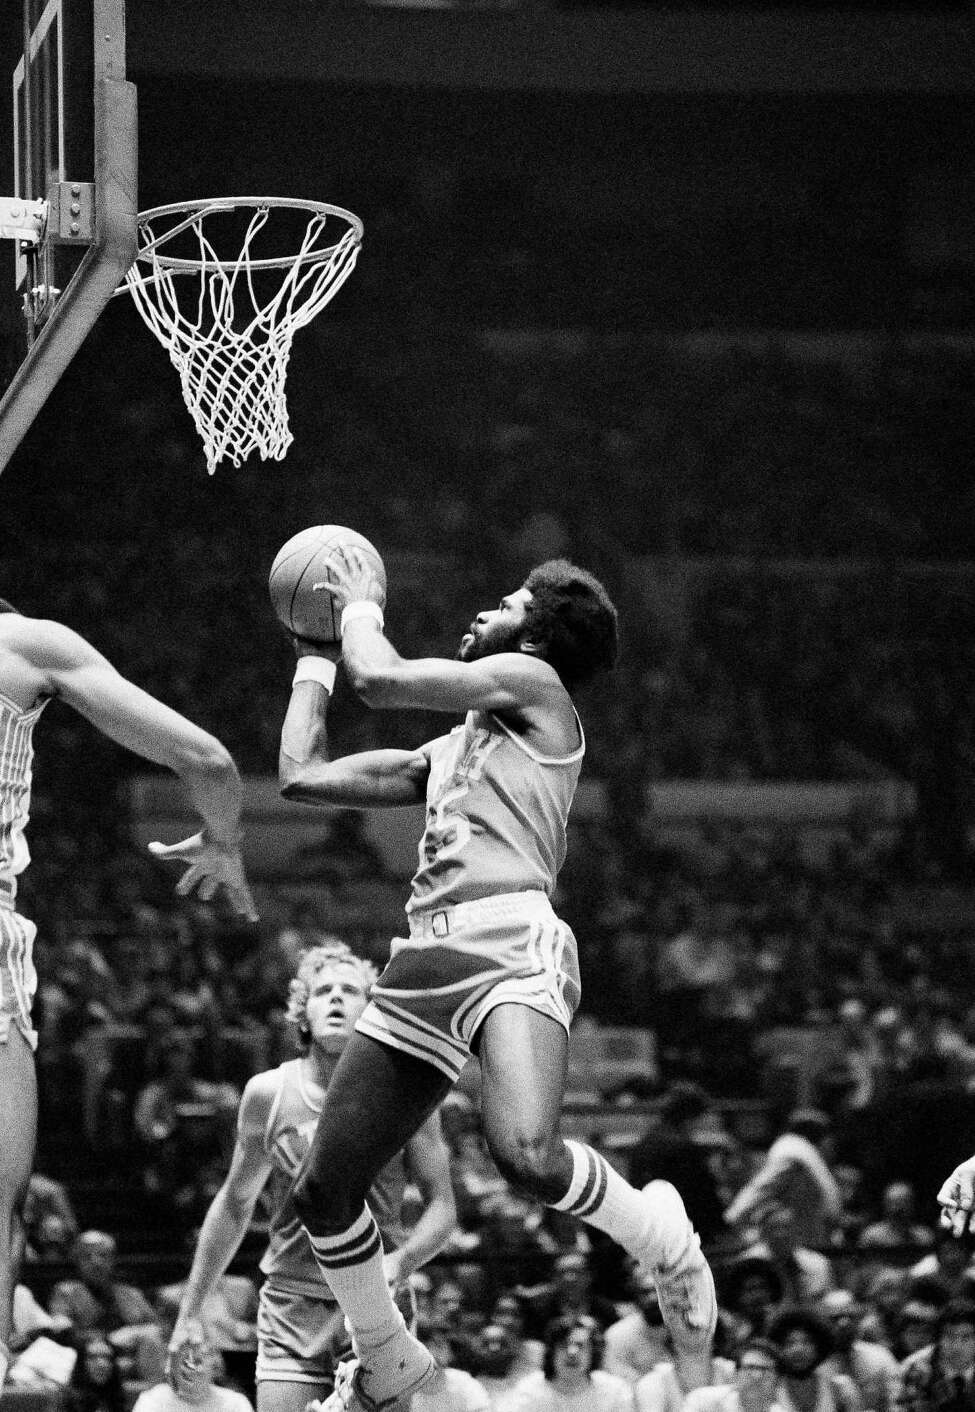 Utah's Ticky Burden goes into action with the ball Sunday in the first game of the National Invitational Tournament, March 17, 1974 at Madison Square Garden in New York City. Burden scored 34 points as Utah held off a second-half rally and defeated Rutgers 102-89. (AP Photo/Ray Stubblebine)